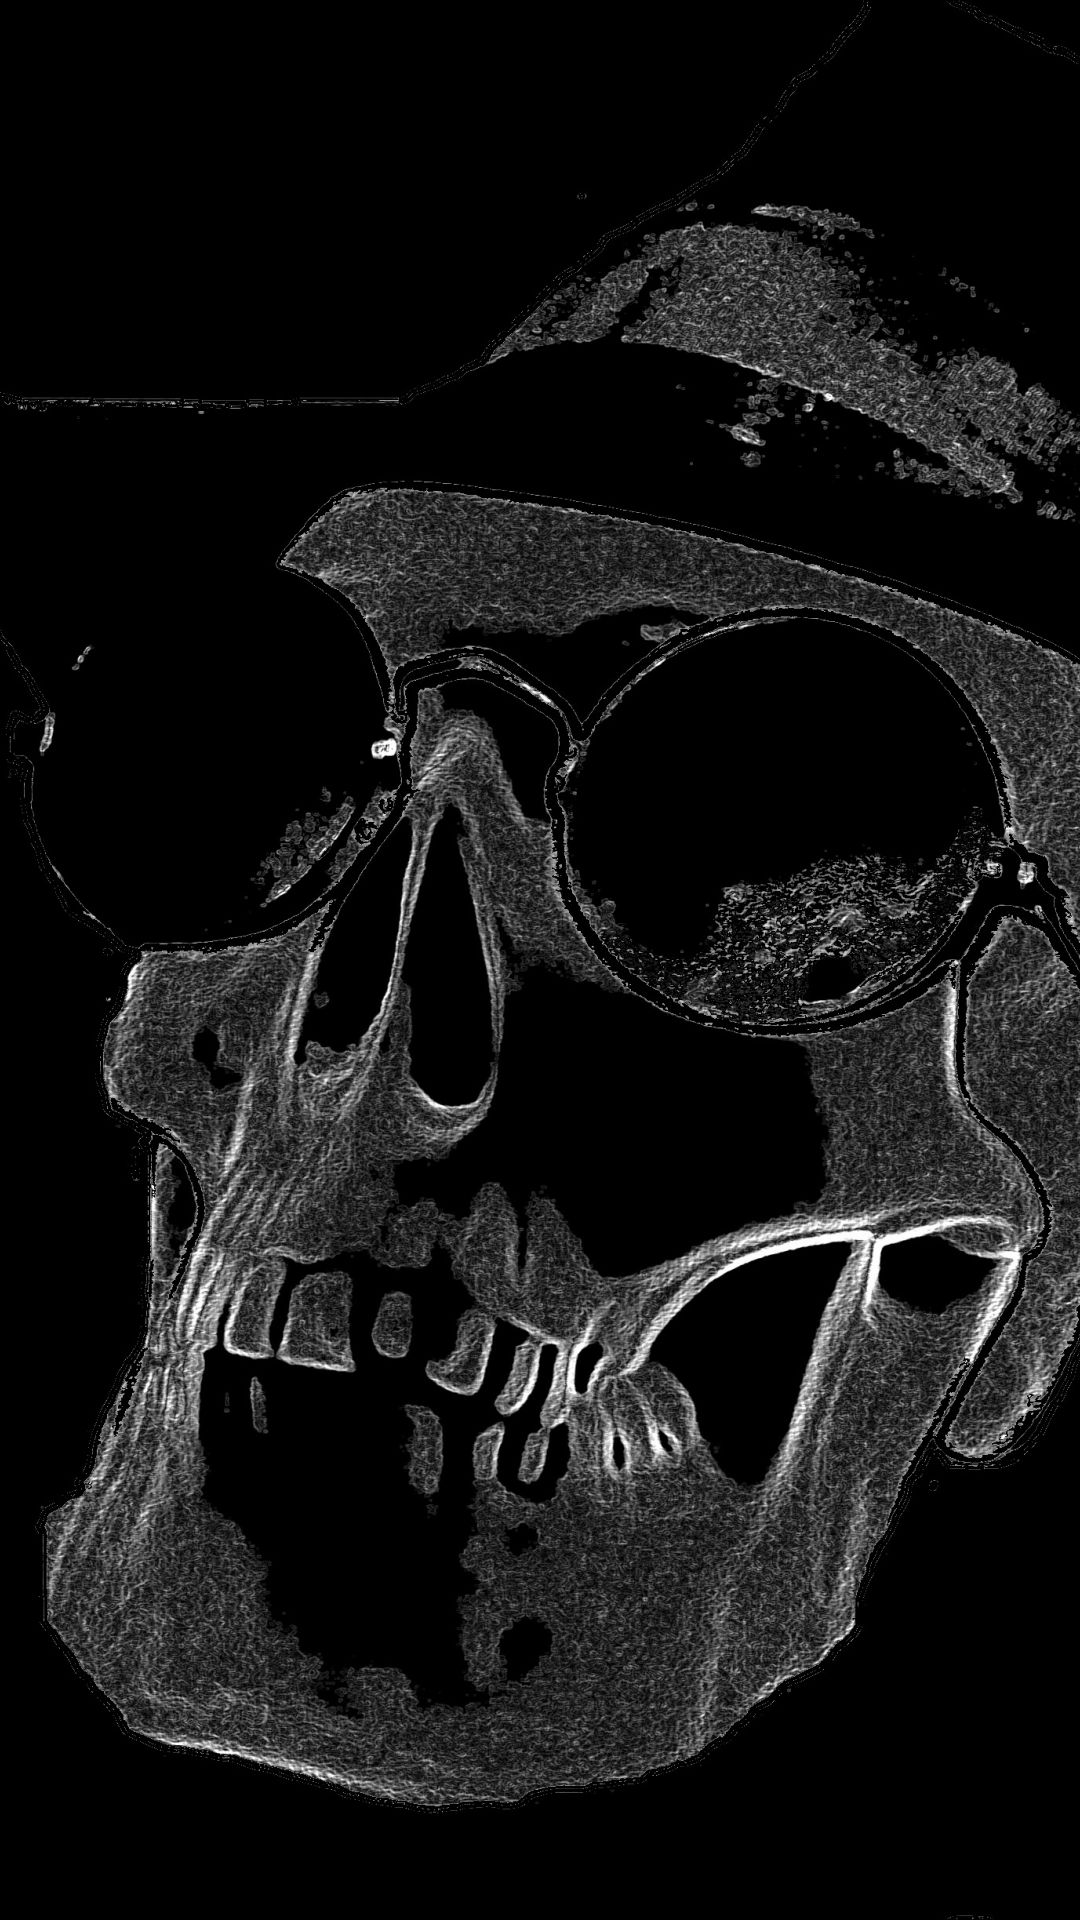 Cool Skull iPhone wallpaper high quality